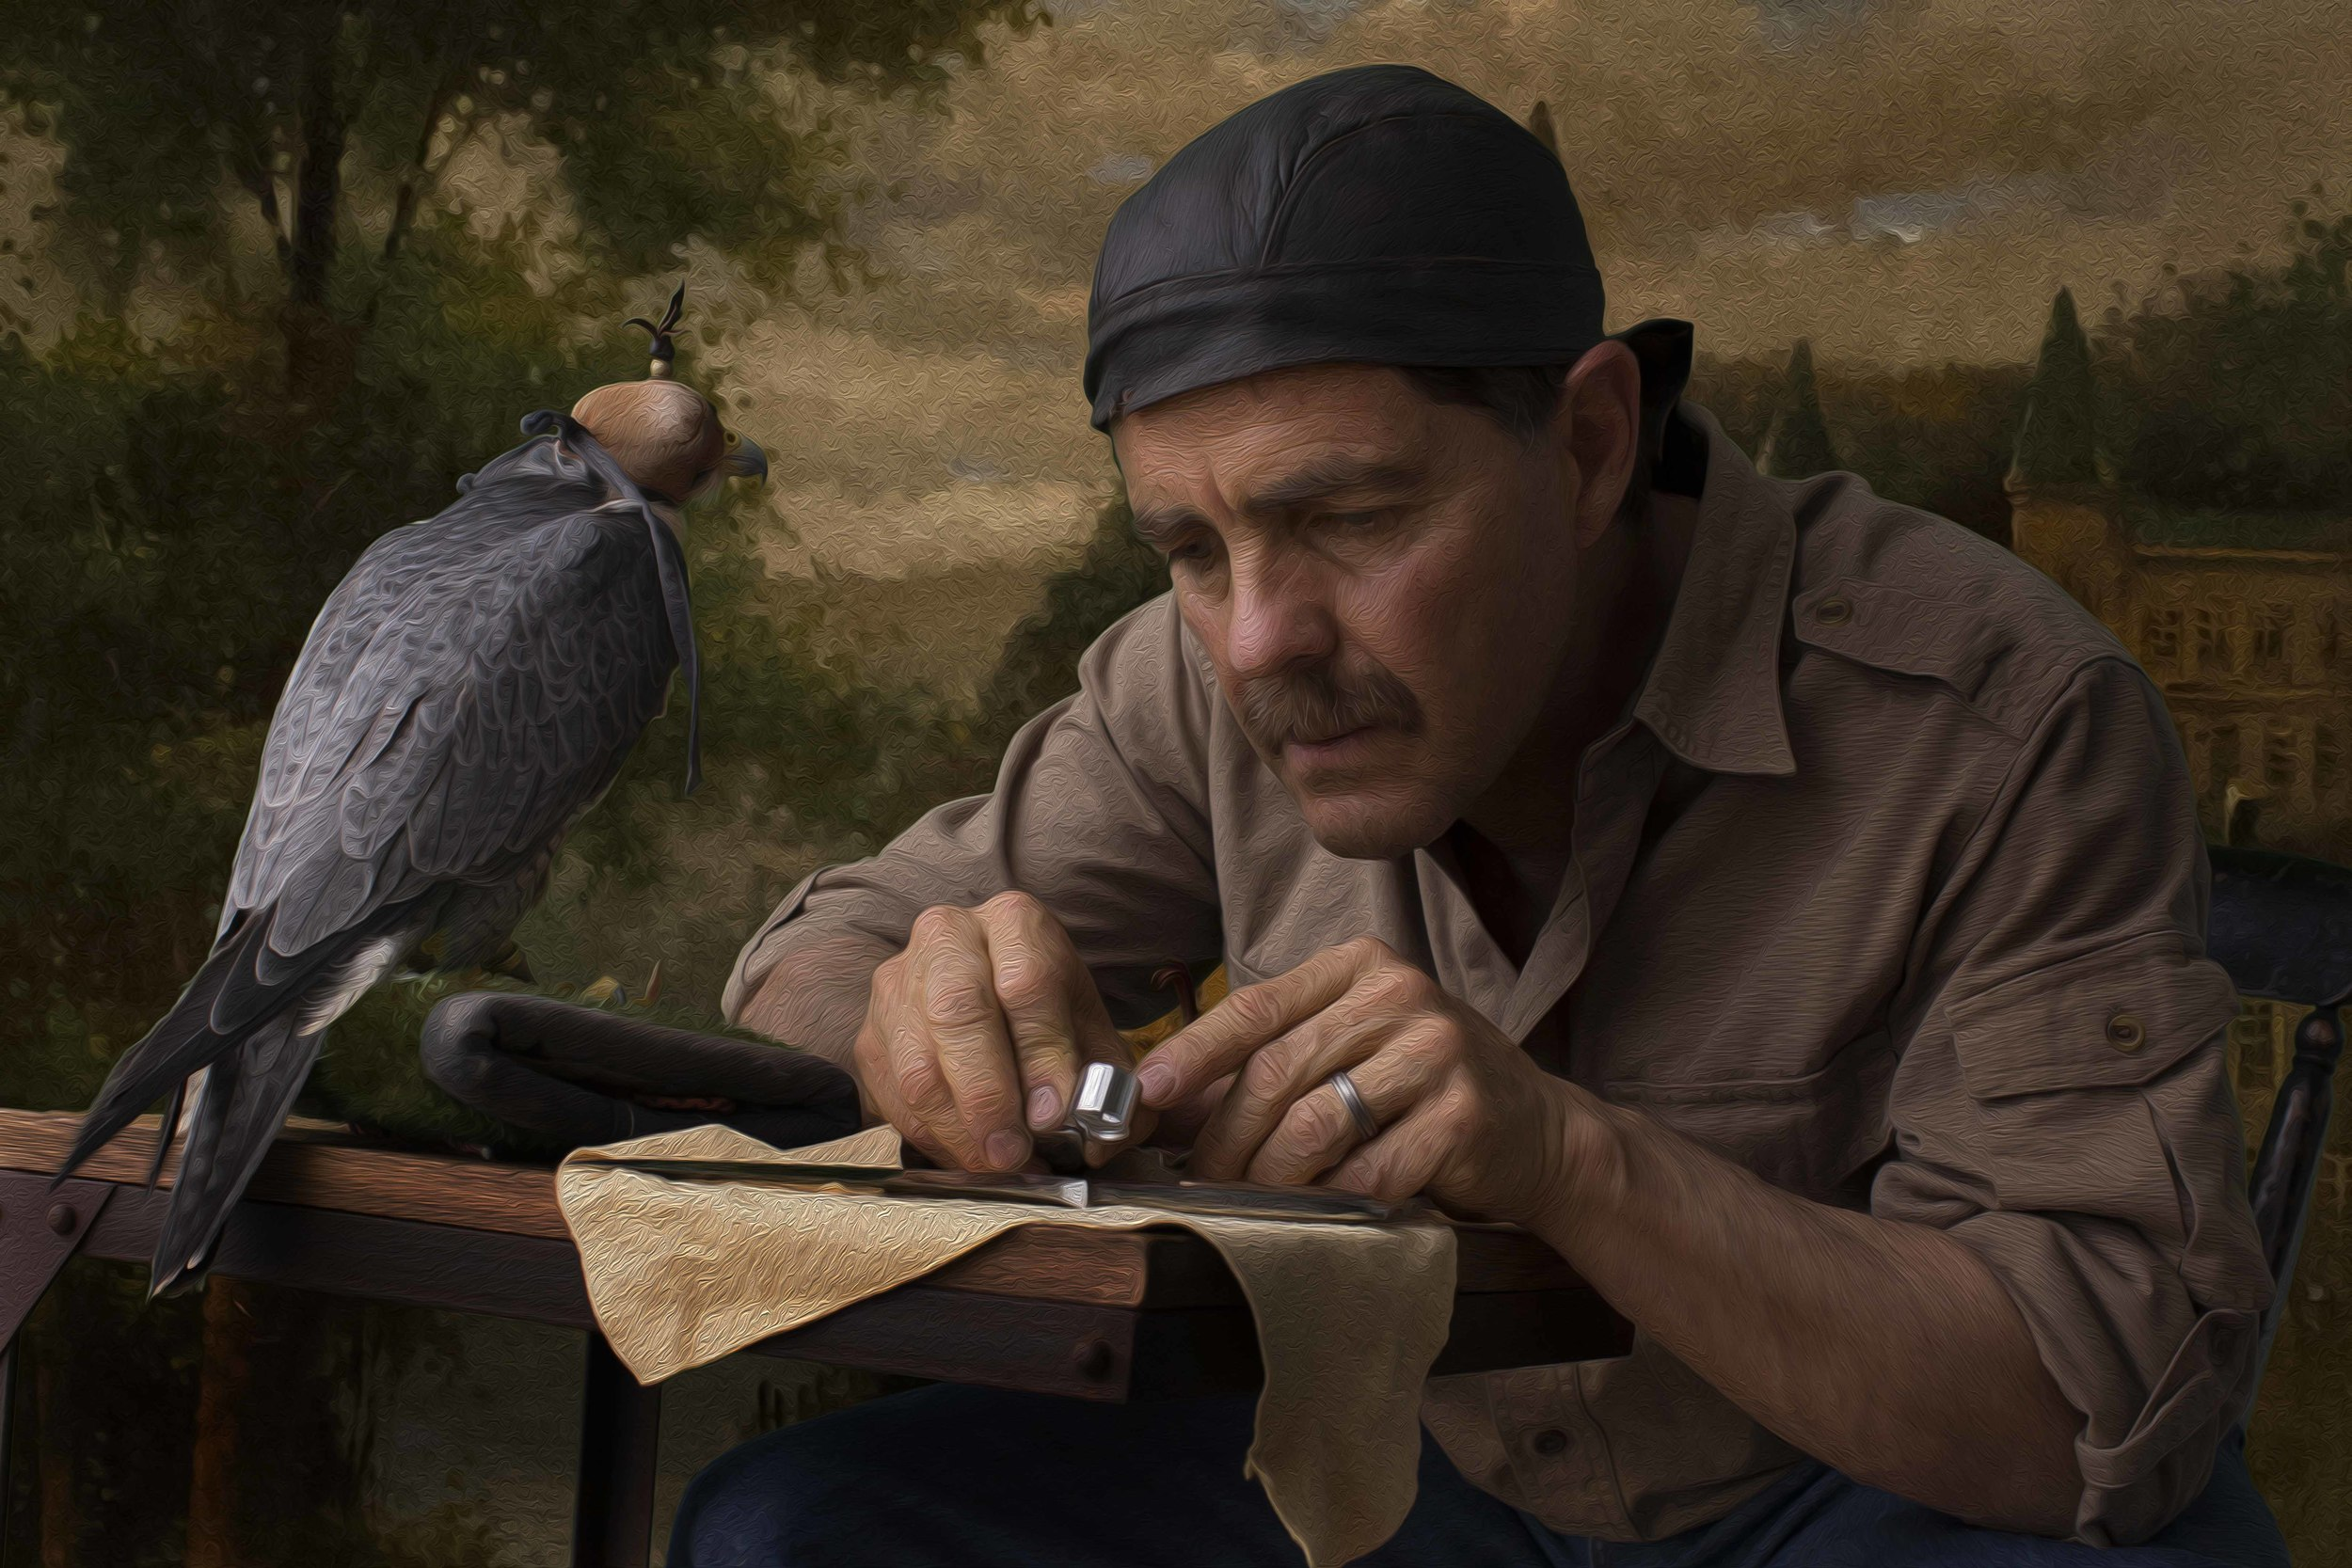 This photo is of my dear friend Ricardo and Frightful, a Peregrin Falcon. I am a Falconer and have a passion for capturing the beauty of this Lord of the Sky.